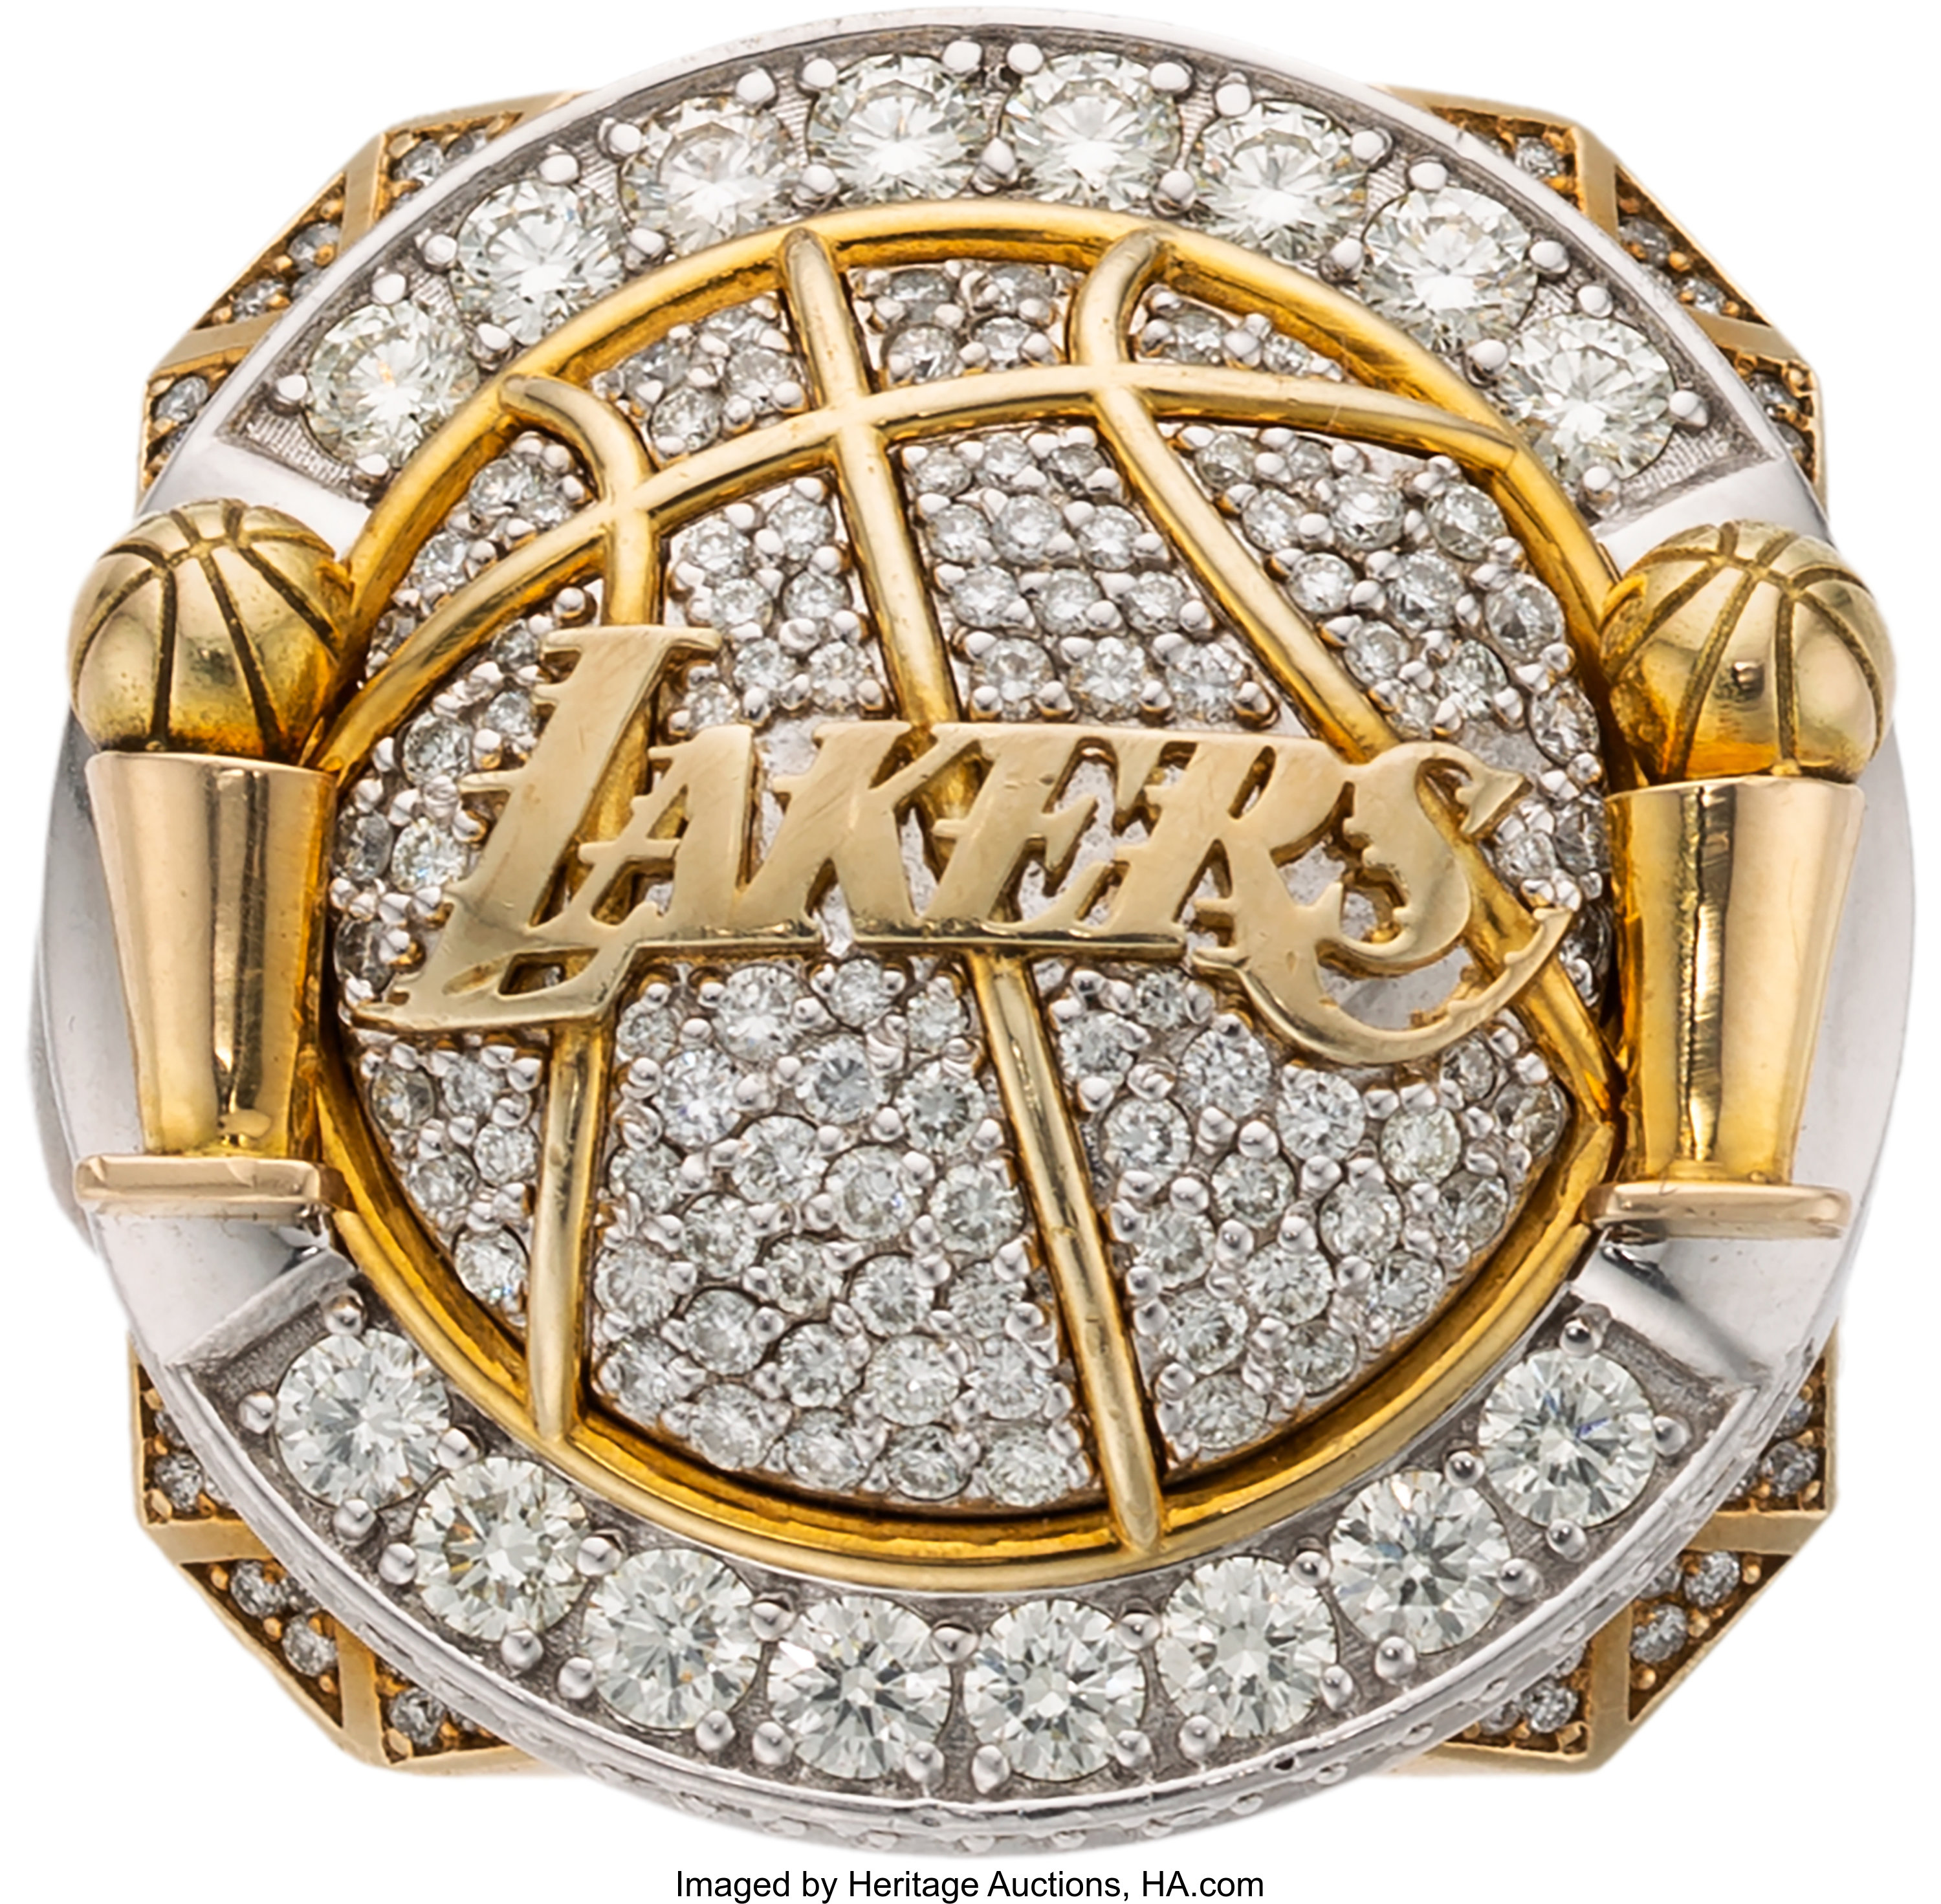 2010 Los Angeles Lakers Nba Championship Ring Presented To Forward Lot 50123 Heritage Auctions